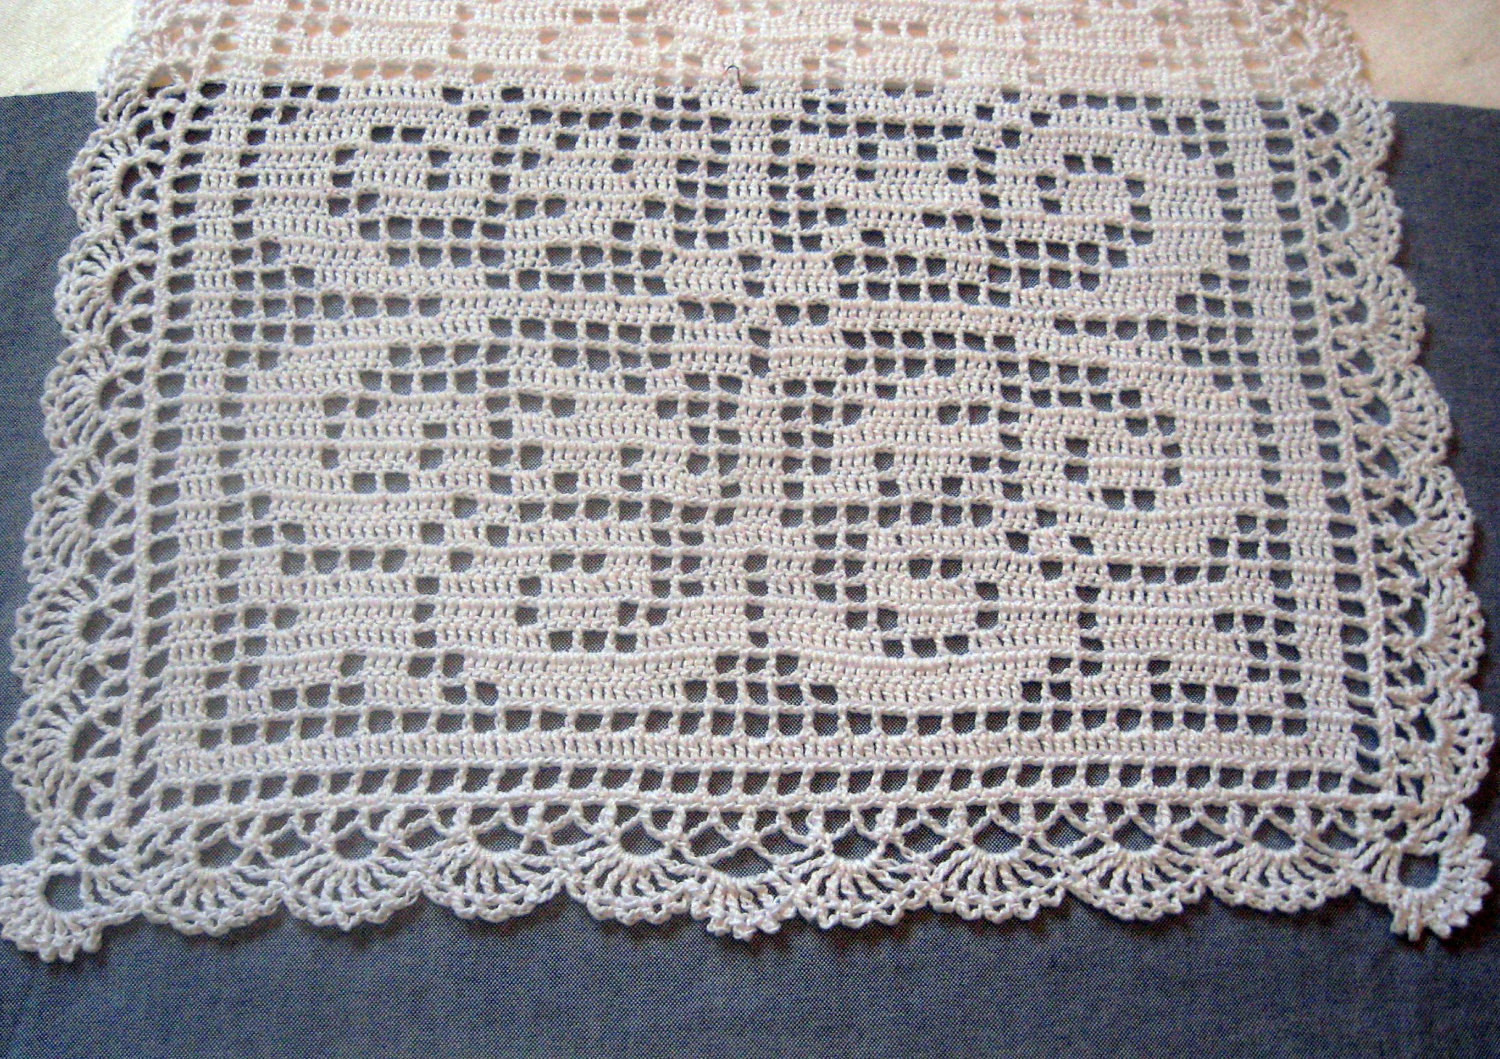 Crochet Runner Luxury Crochet Table Runner Of Fresh 45 Ideas Crochet Runner